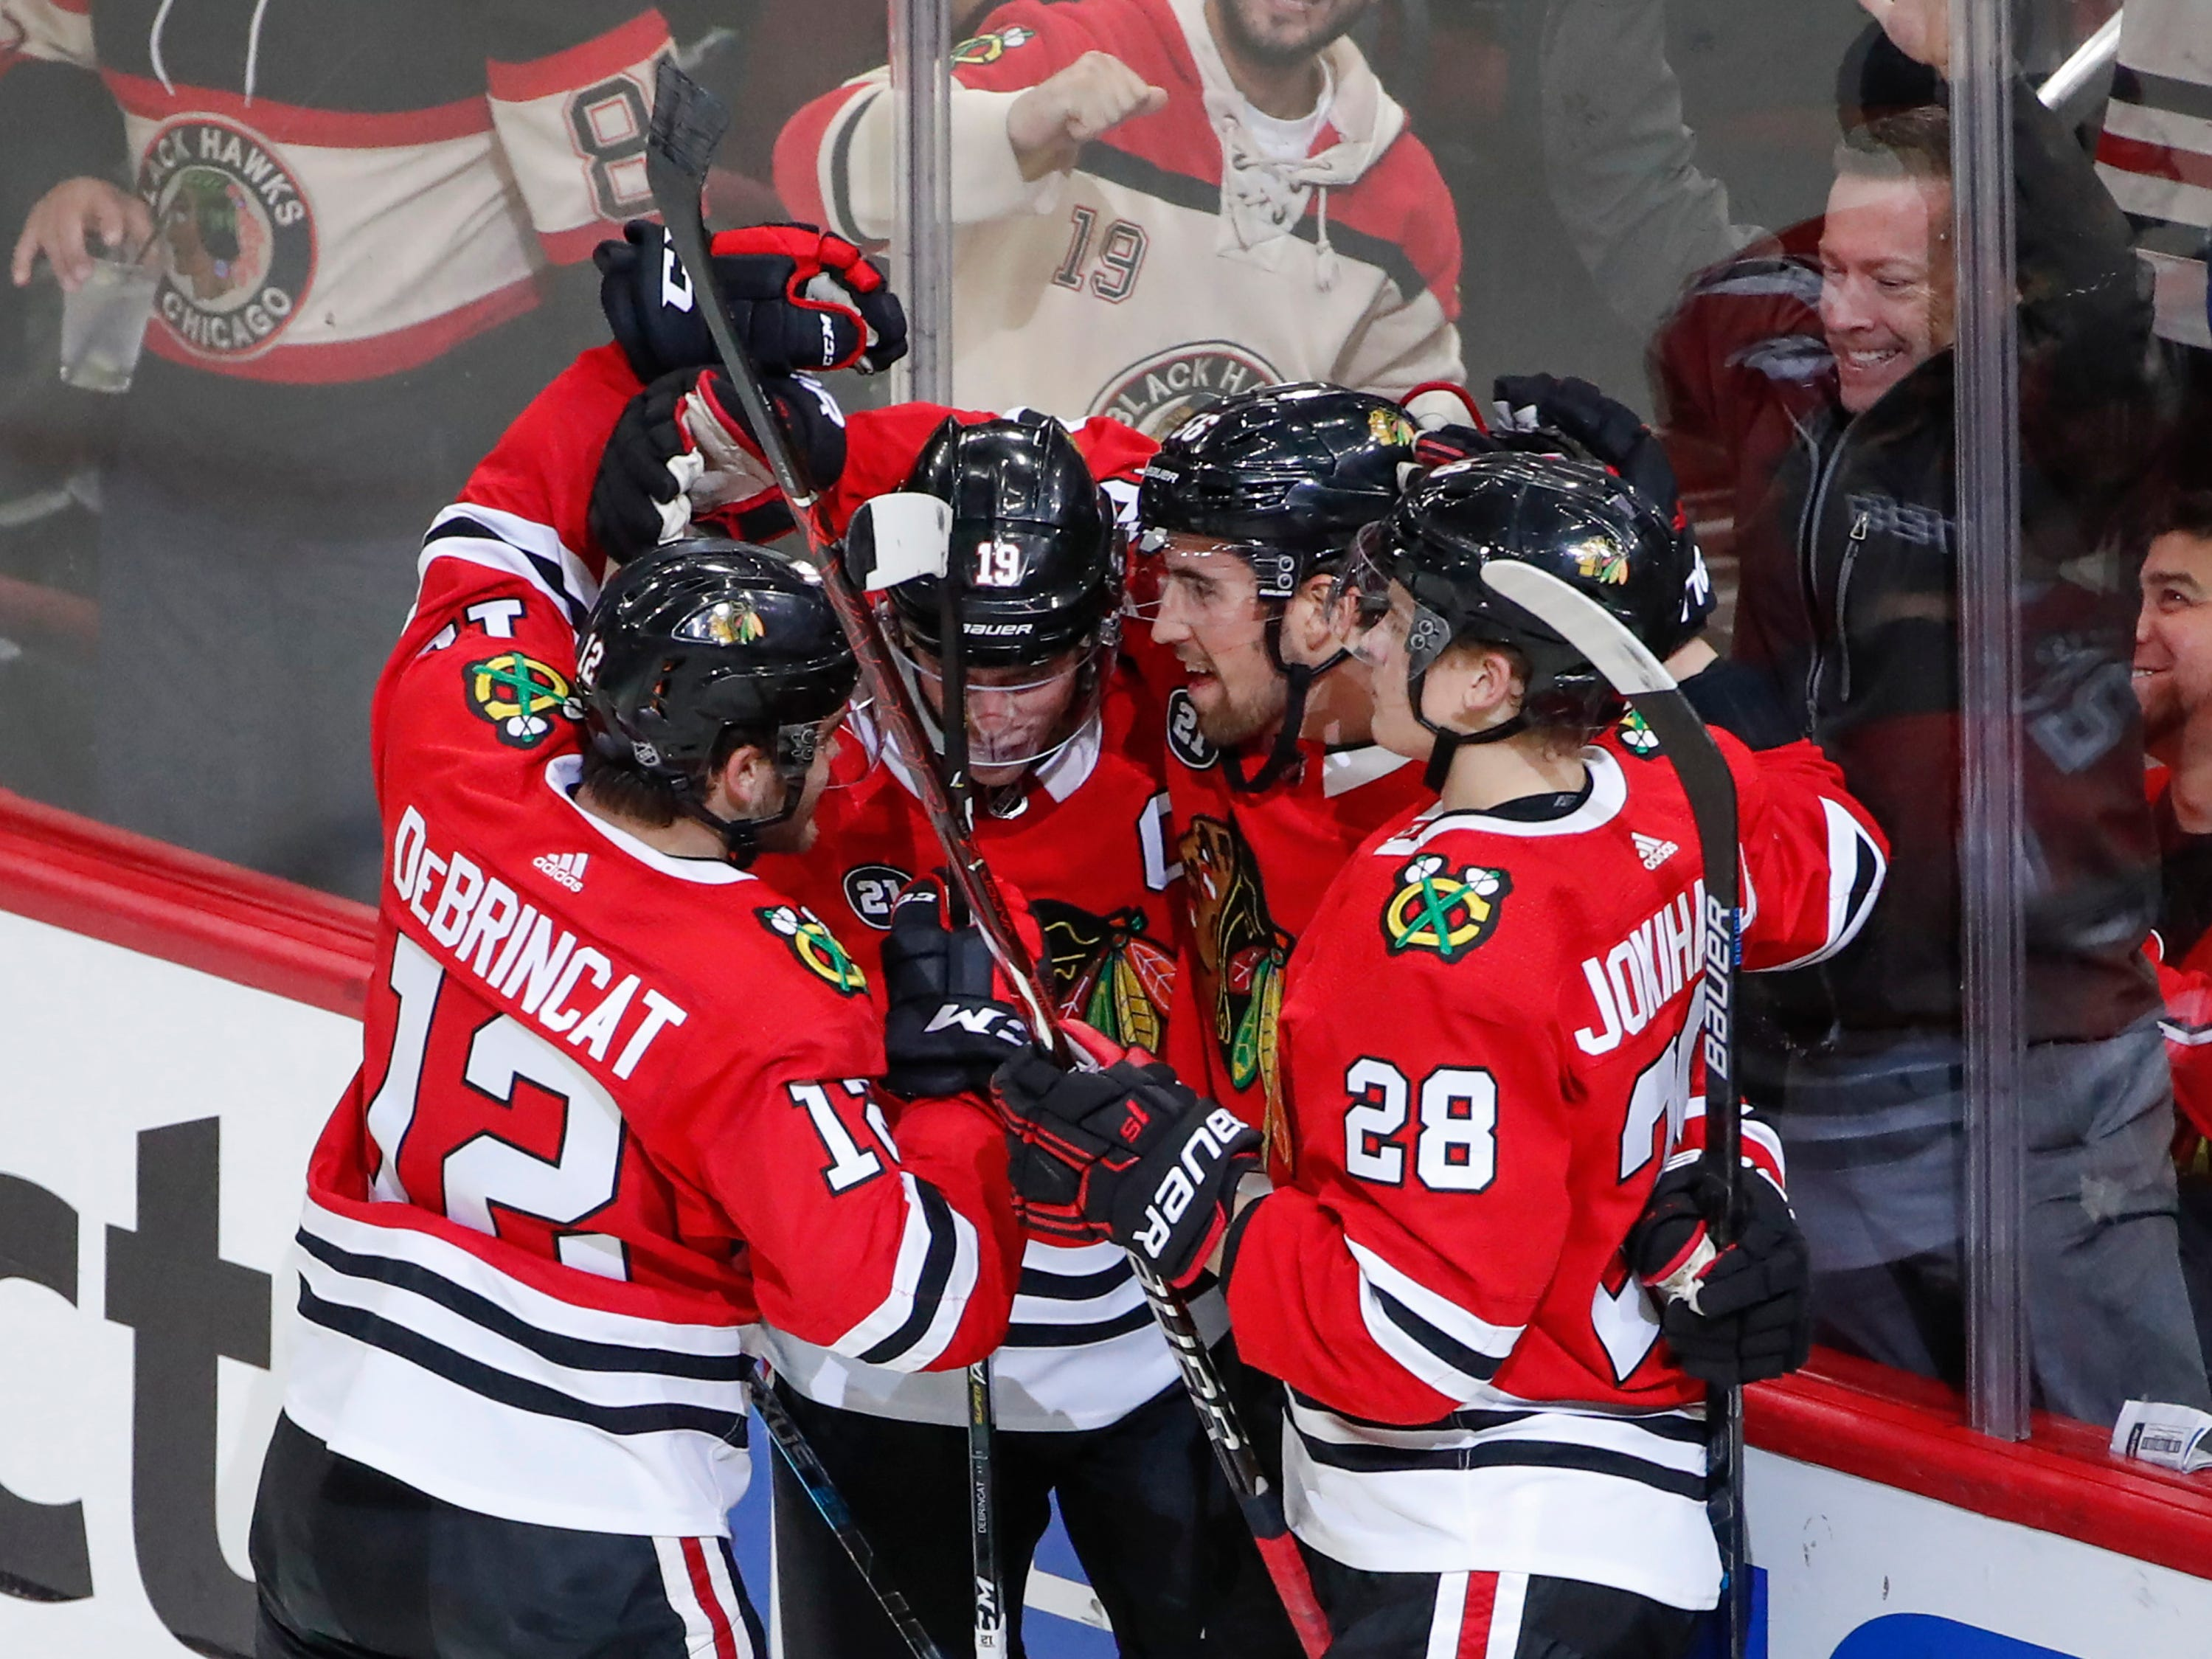 Oct 18, 2018; Chicago, IL, USA; Chicago Blackhawks defenseman Erik Gustafsson (56) celebrates with teammates after scoring against the Arizona Coyotes during the second period at United Center.